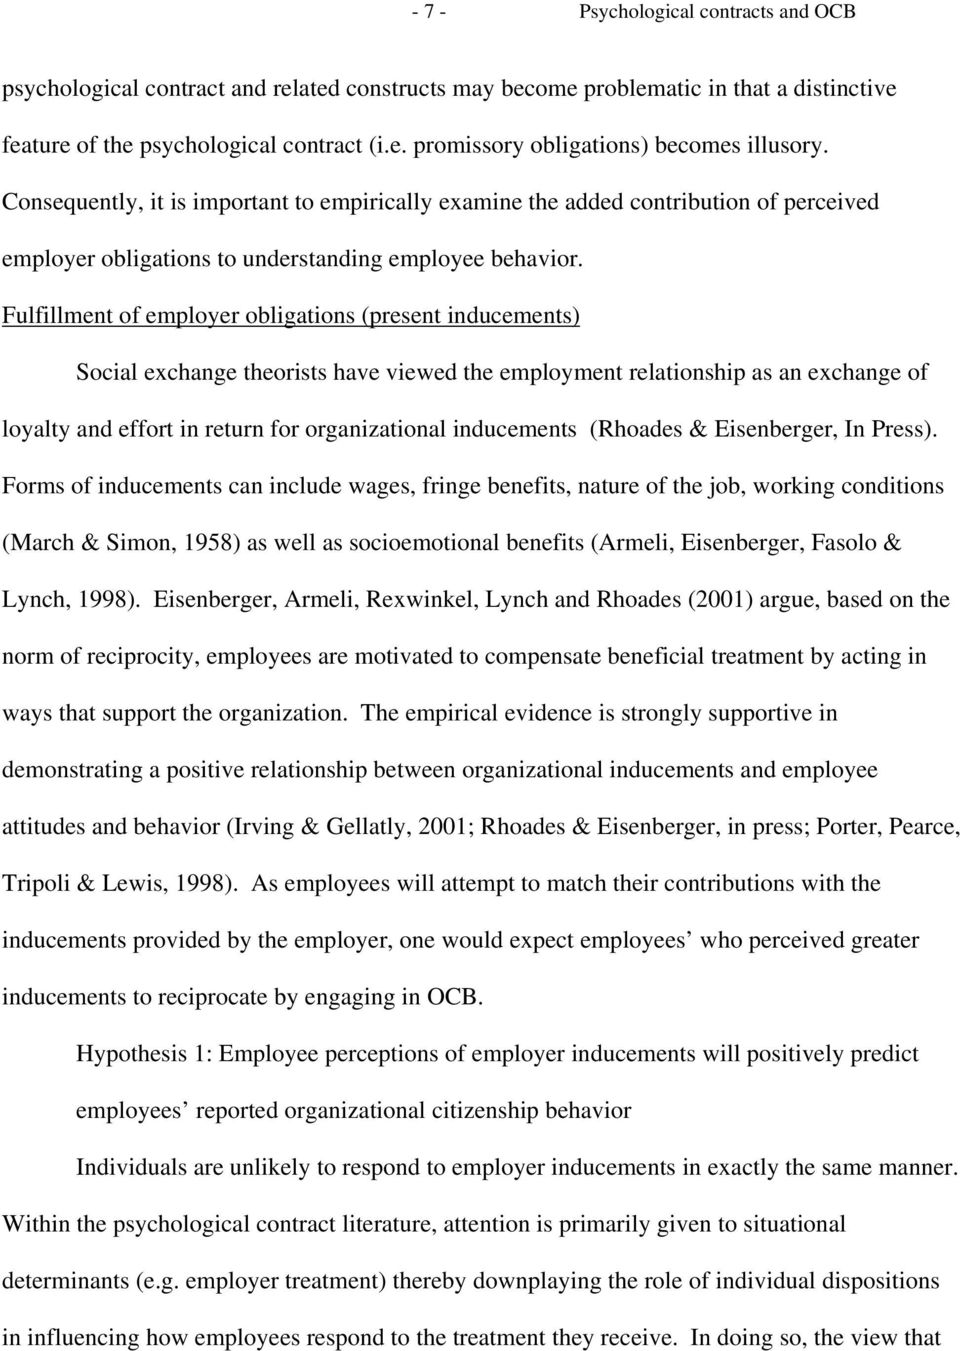 Fulfillment of employer obligations (present inducements) Social exchange theorists have viewed the employment relationship as an exchange of loyalty and effort in return for organizational